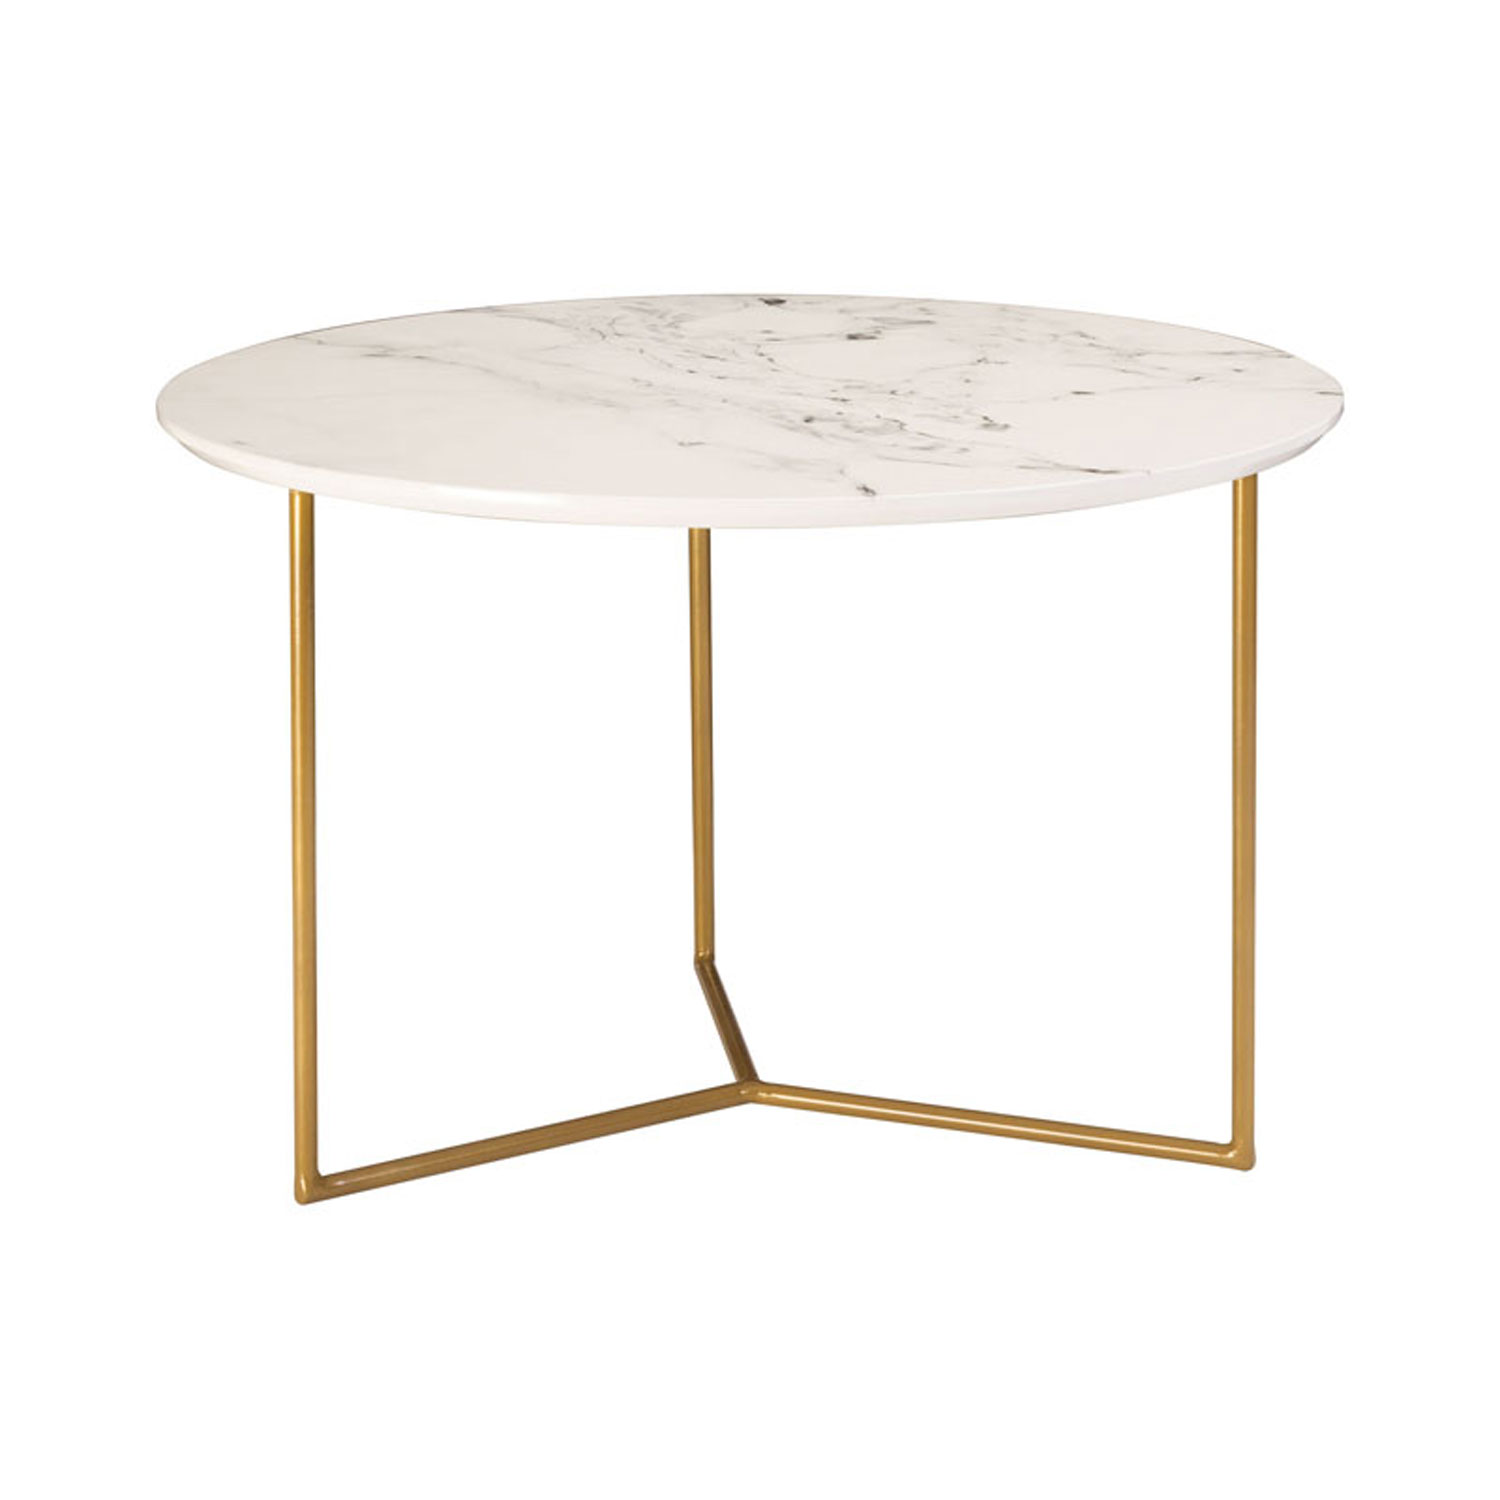 sterling industries glacier gold and white printed marble accent table hover zoom large round wall clock plastic side target small oval end commercial tablecloths unfinished